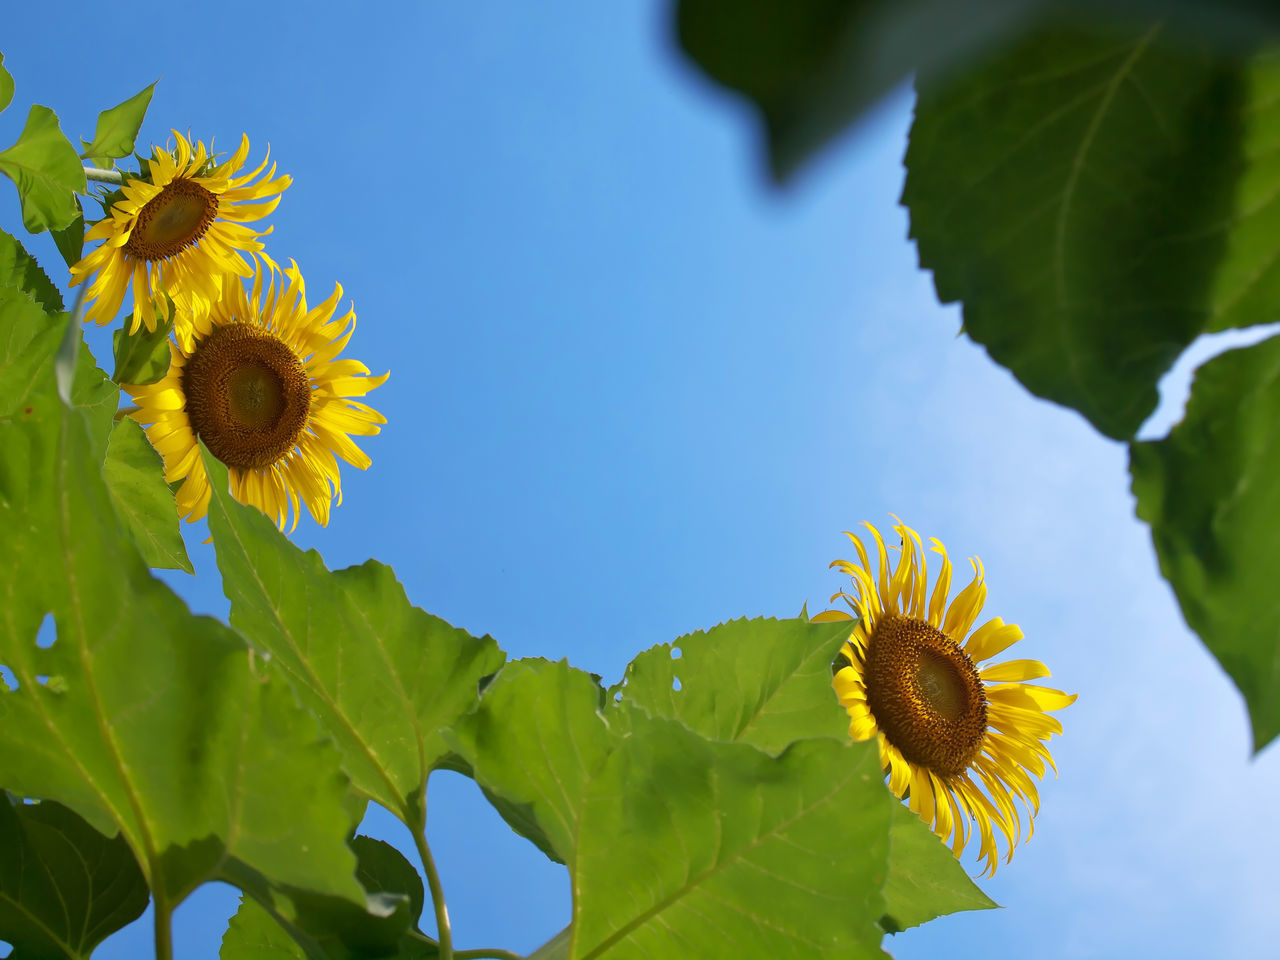 flower, freshness, fragility, petal, beauty in nature, leaf, nature, flower head, growth, yellow, plant, sunflower, blooming, outdoors, day, no people, low angle view, close-up, pollen, green color, sky, clear sky